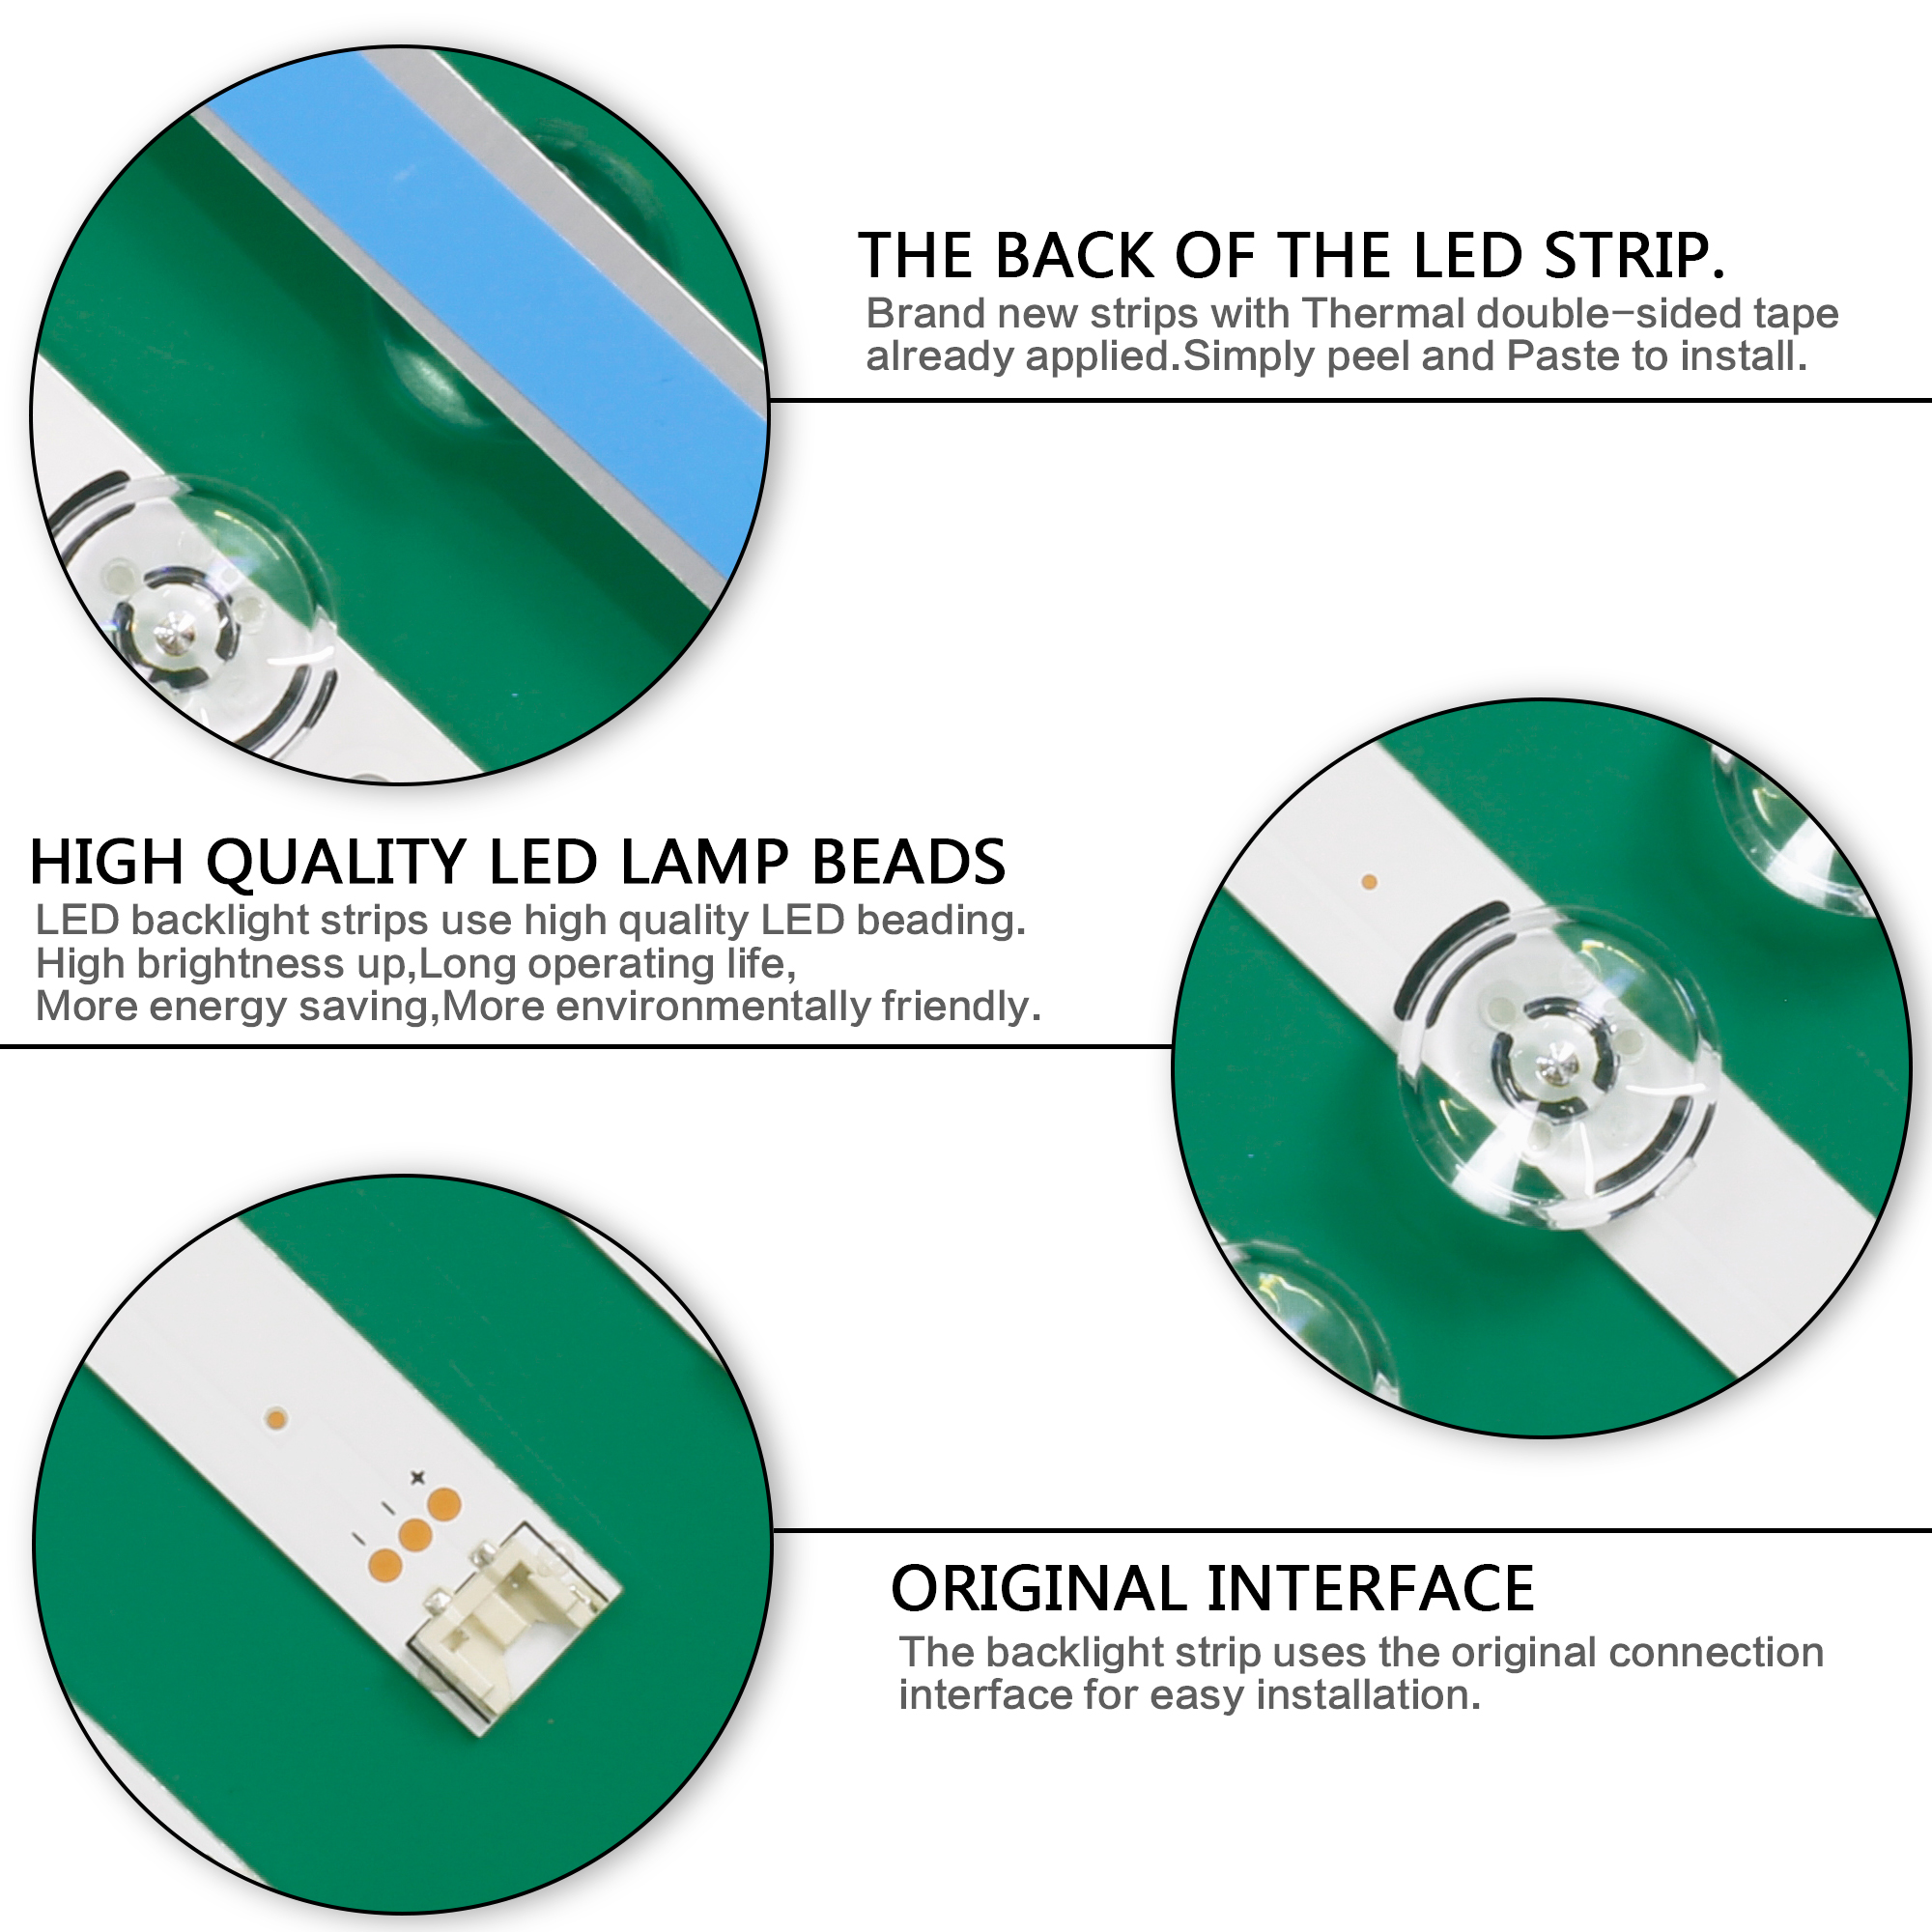 """Image 5 - LED backlight strip 6 lamp for LG innotek DRT 3.0 32""""_A/B 590mm 6916L 2406A 6916L 2407A LG32LF560U 32LF630V 32LB5800 UG 32LB580V-in Industrial Computer & Accessories from Computer & Office"""